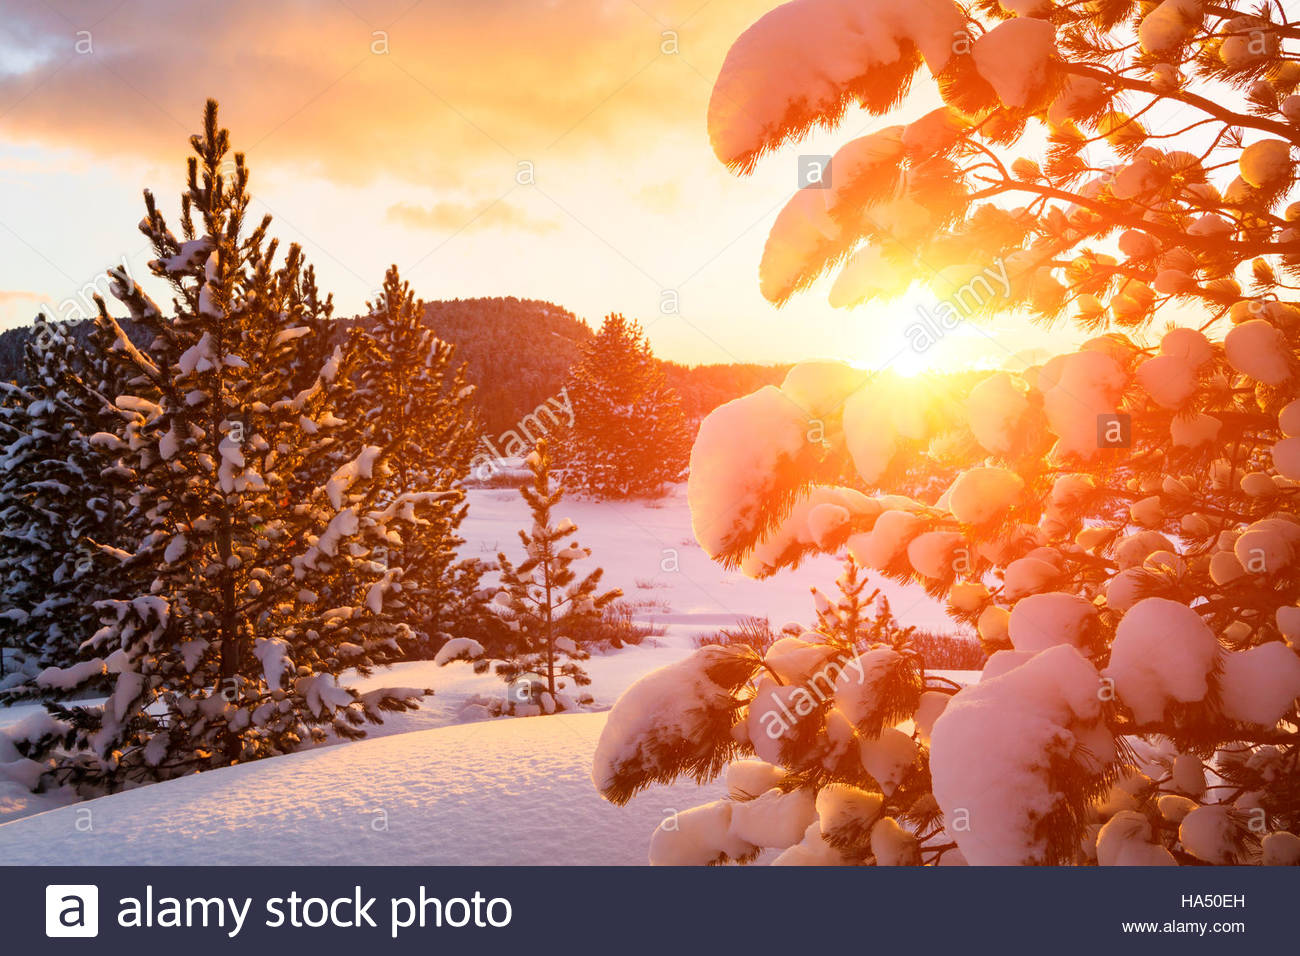 Winter forest at sunset - Stock Image